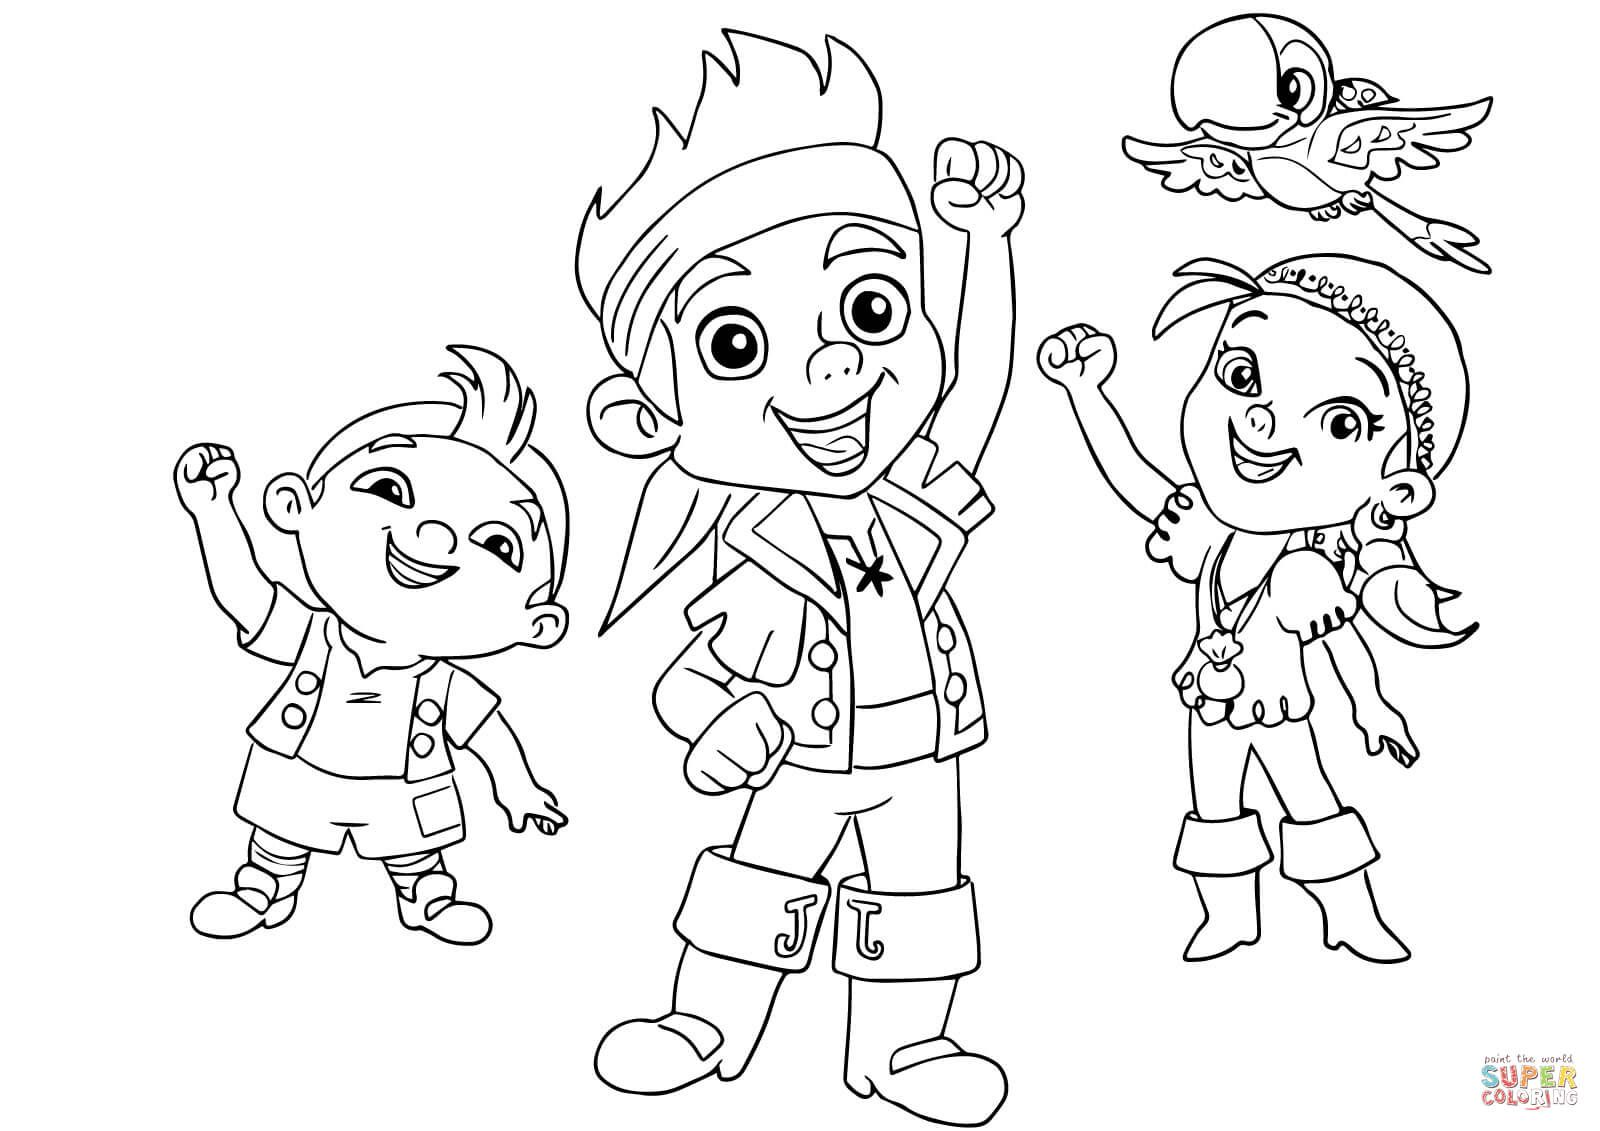 jake and the neverland pirates coloring page l izzy cubby and skully lfo - Jake And The Neverland Pirates Free Coloring Pages